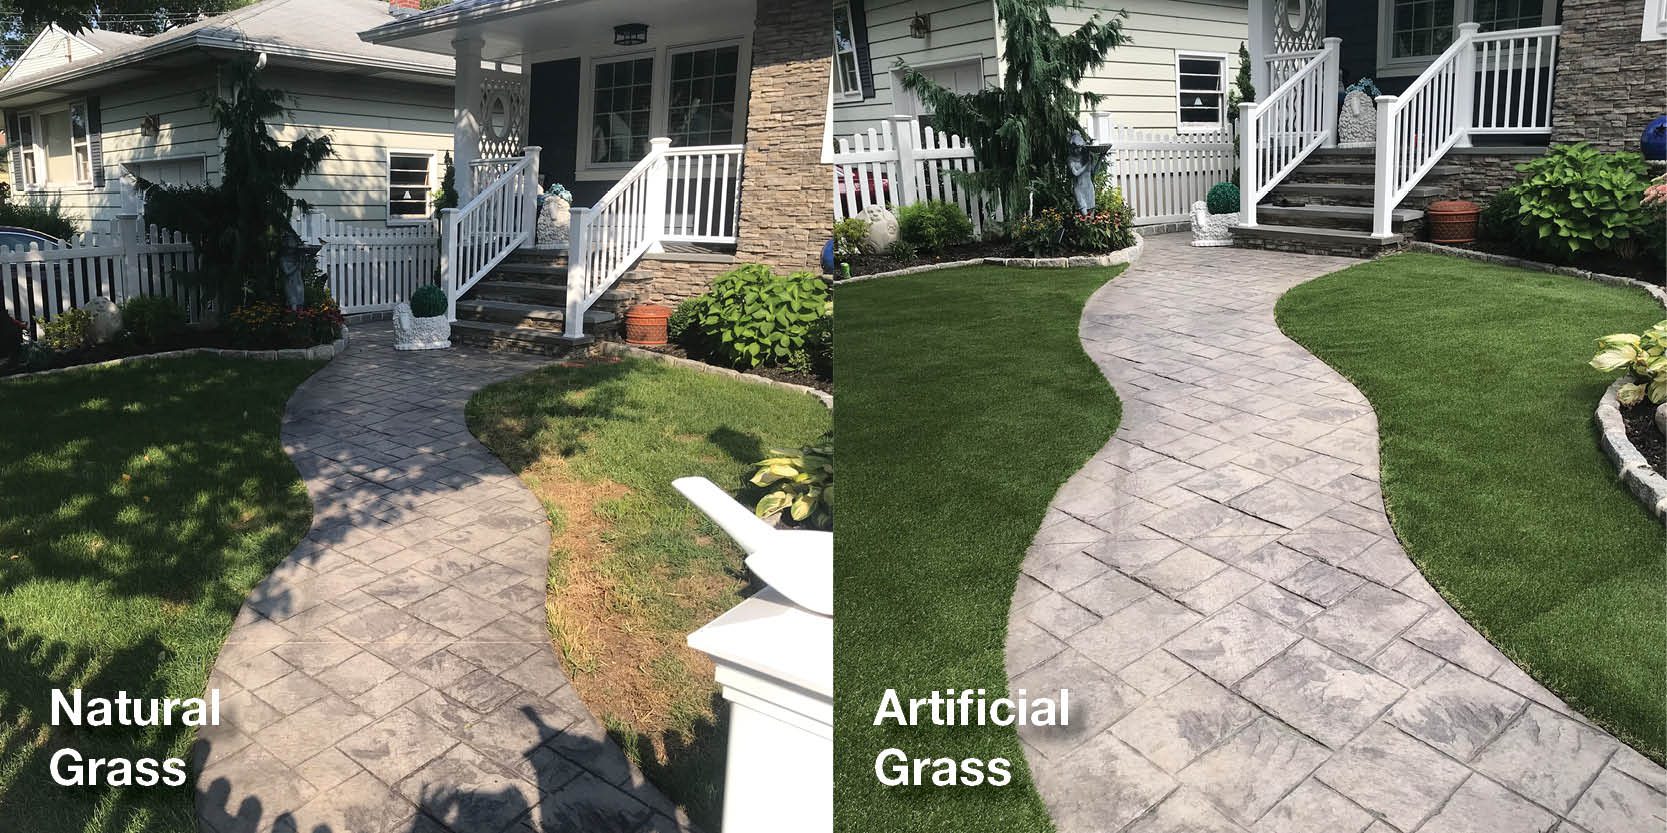 Top 3 benefits of having artificial turf in the winter - Before and After photo